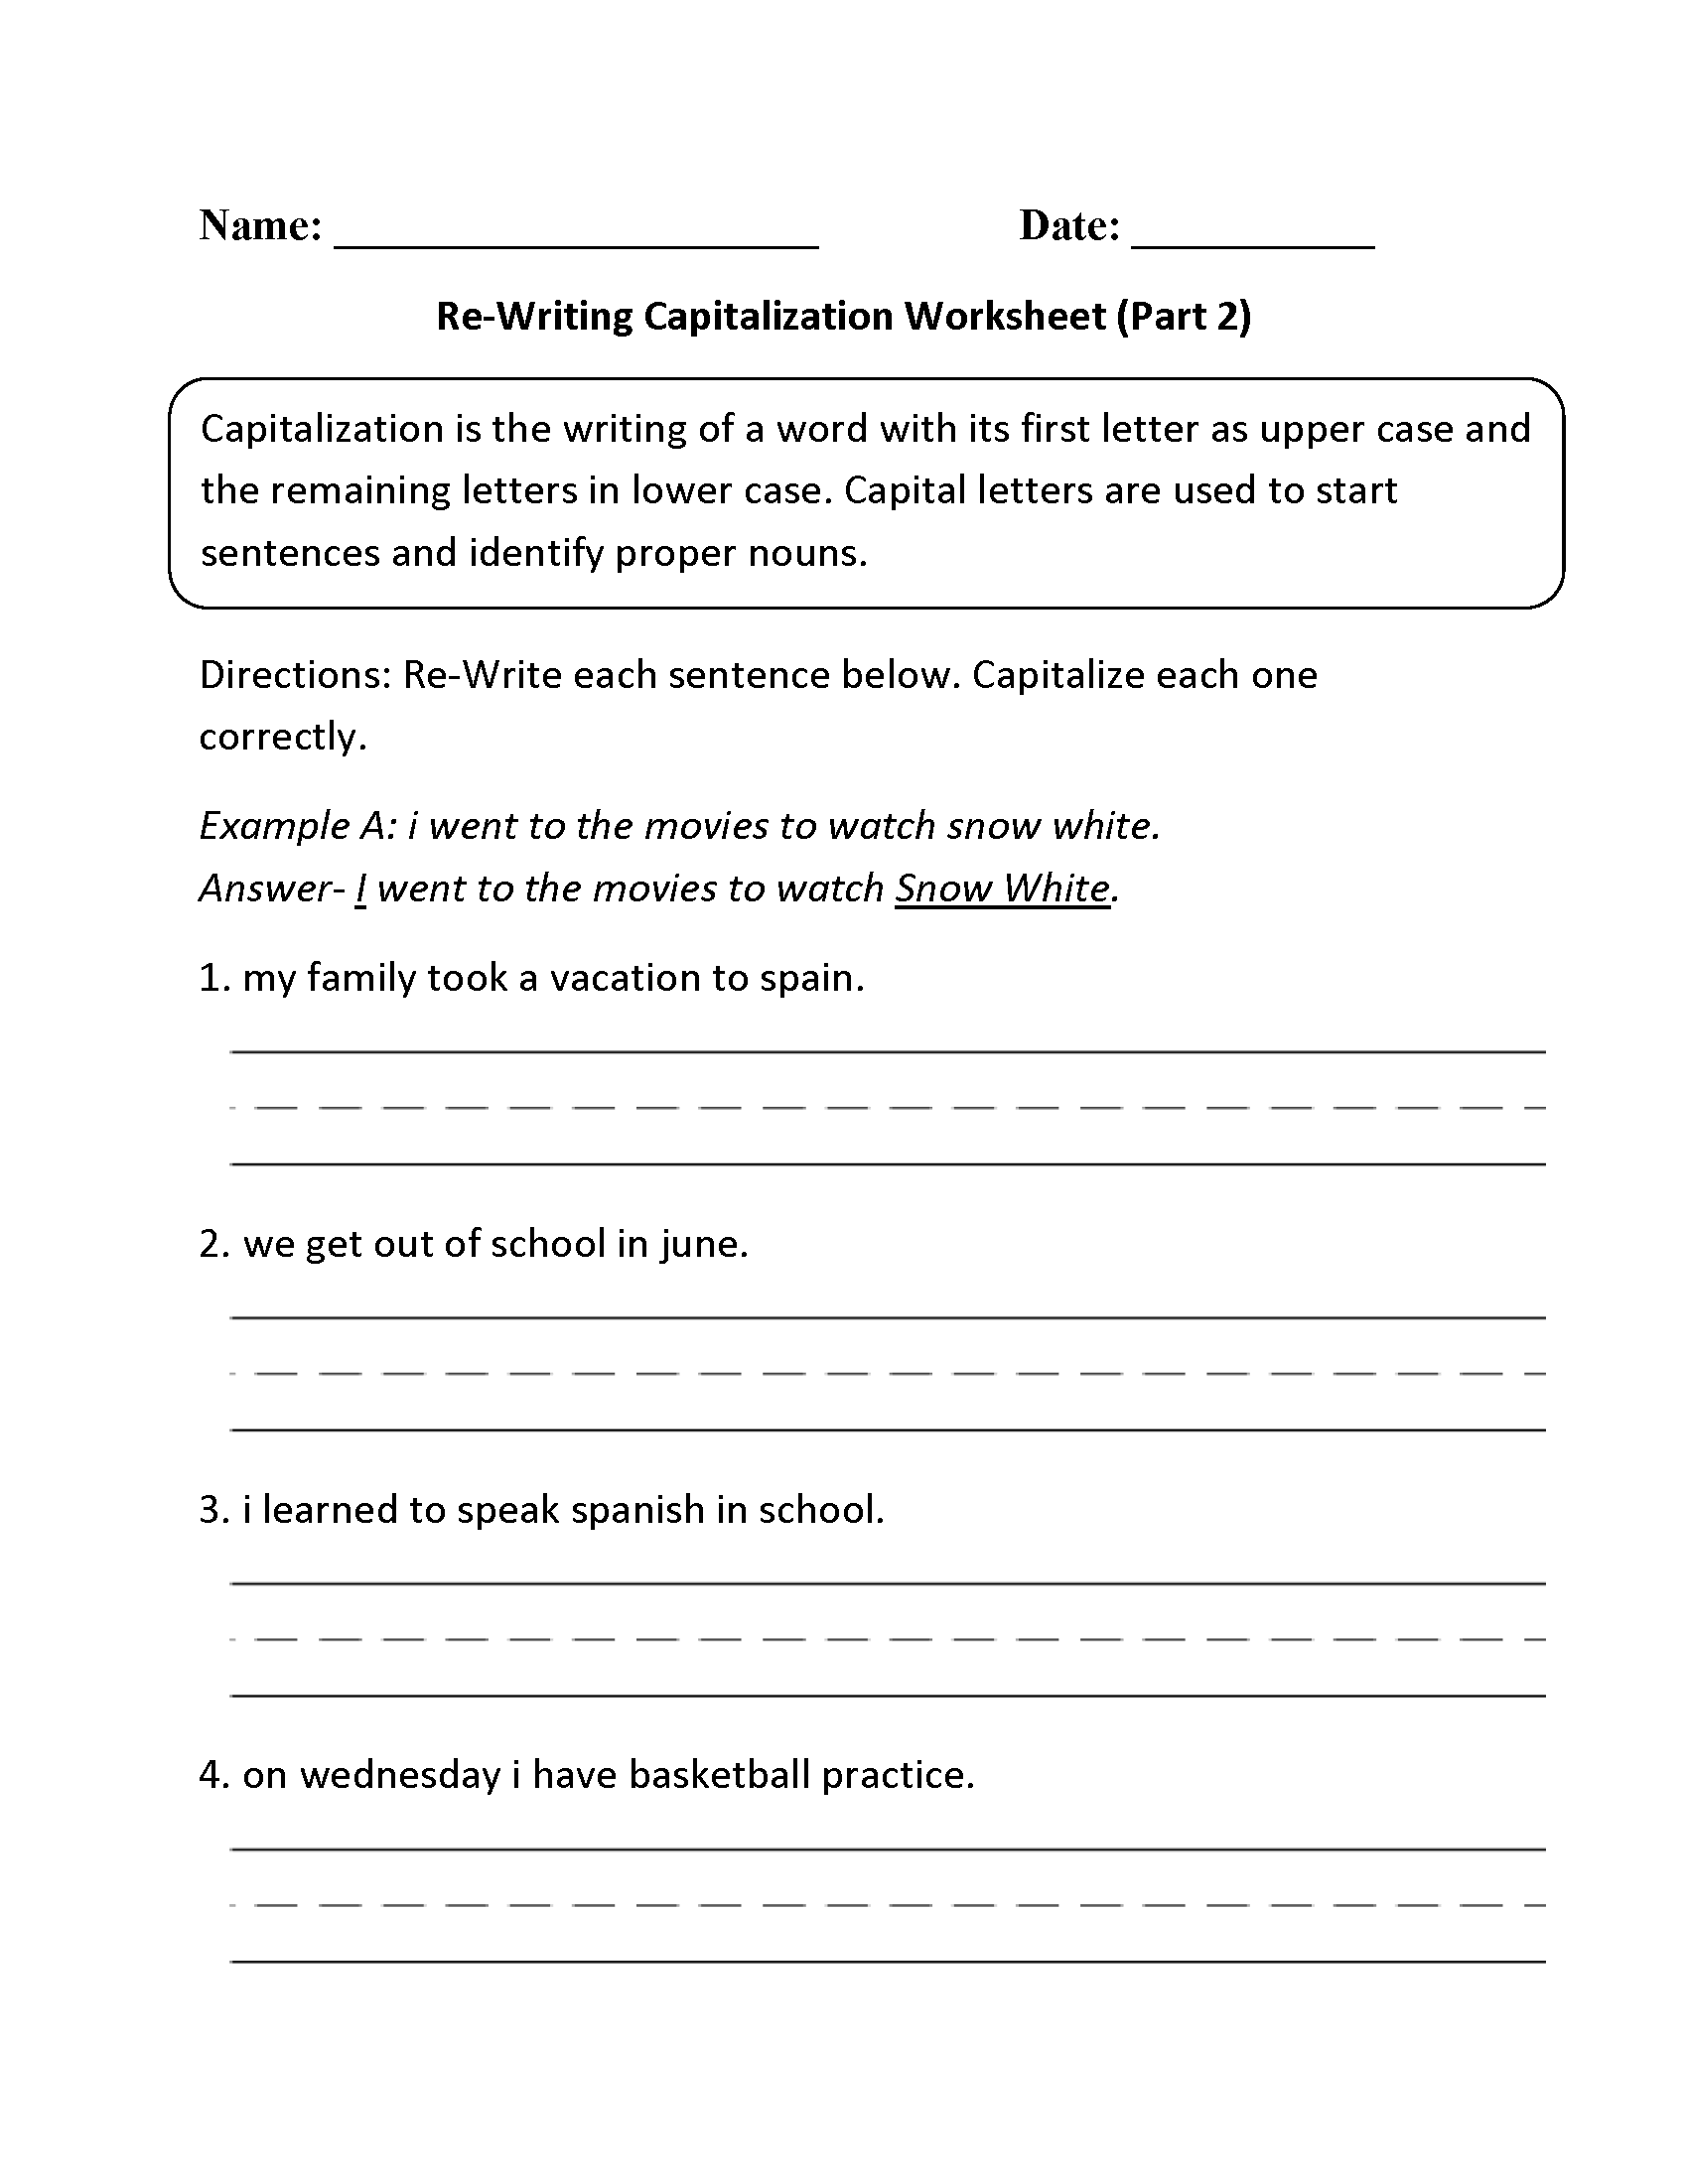 worksheet Capitalization Practice Worksheets englishlinx com capitalization worksheets re writing worksheet part 2